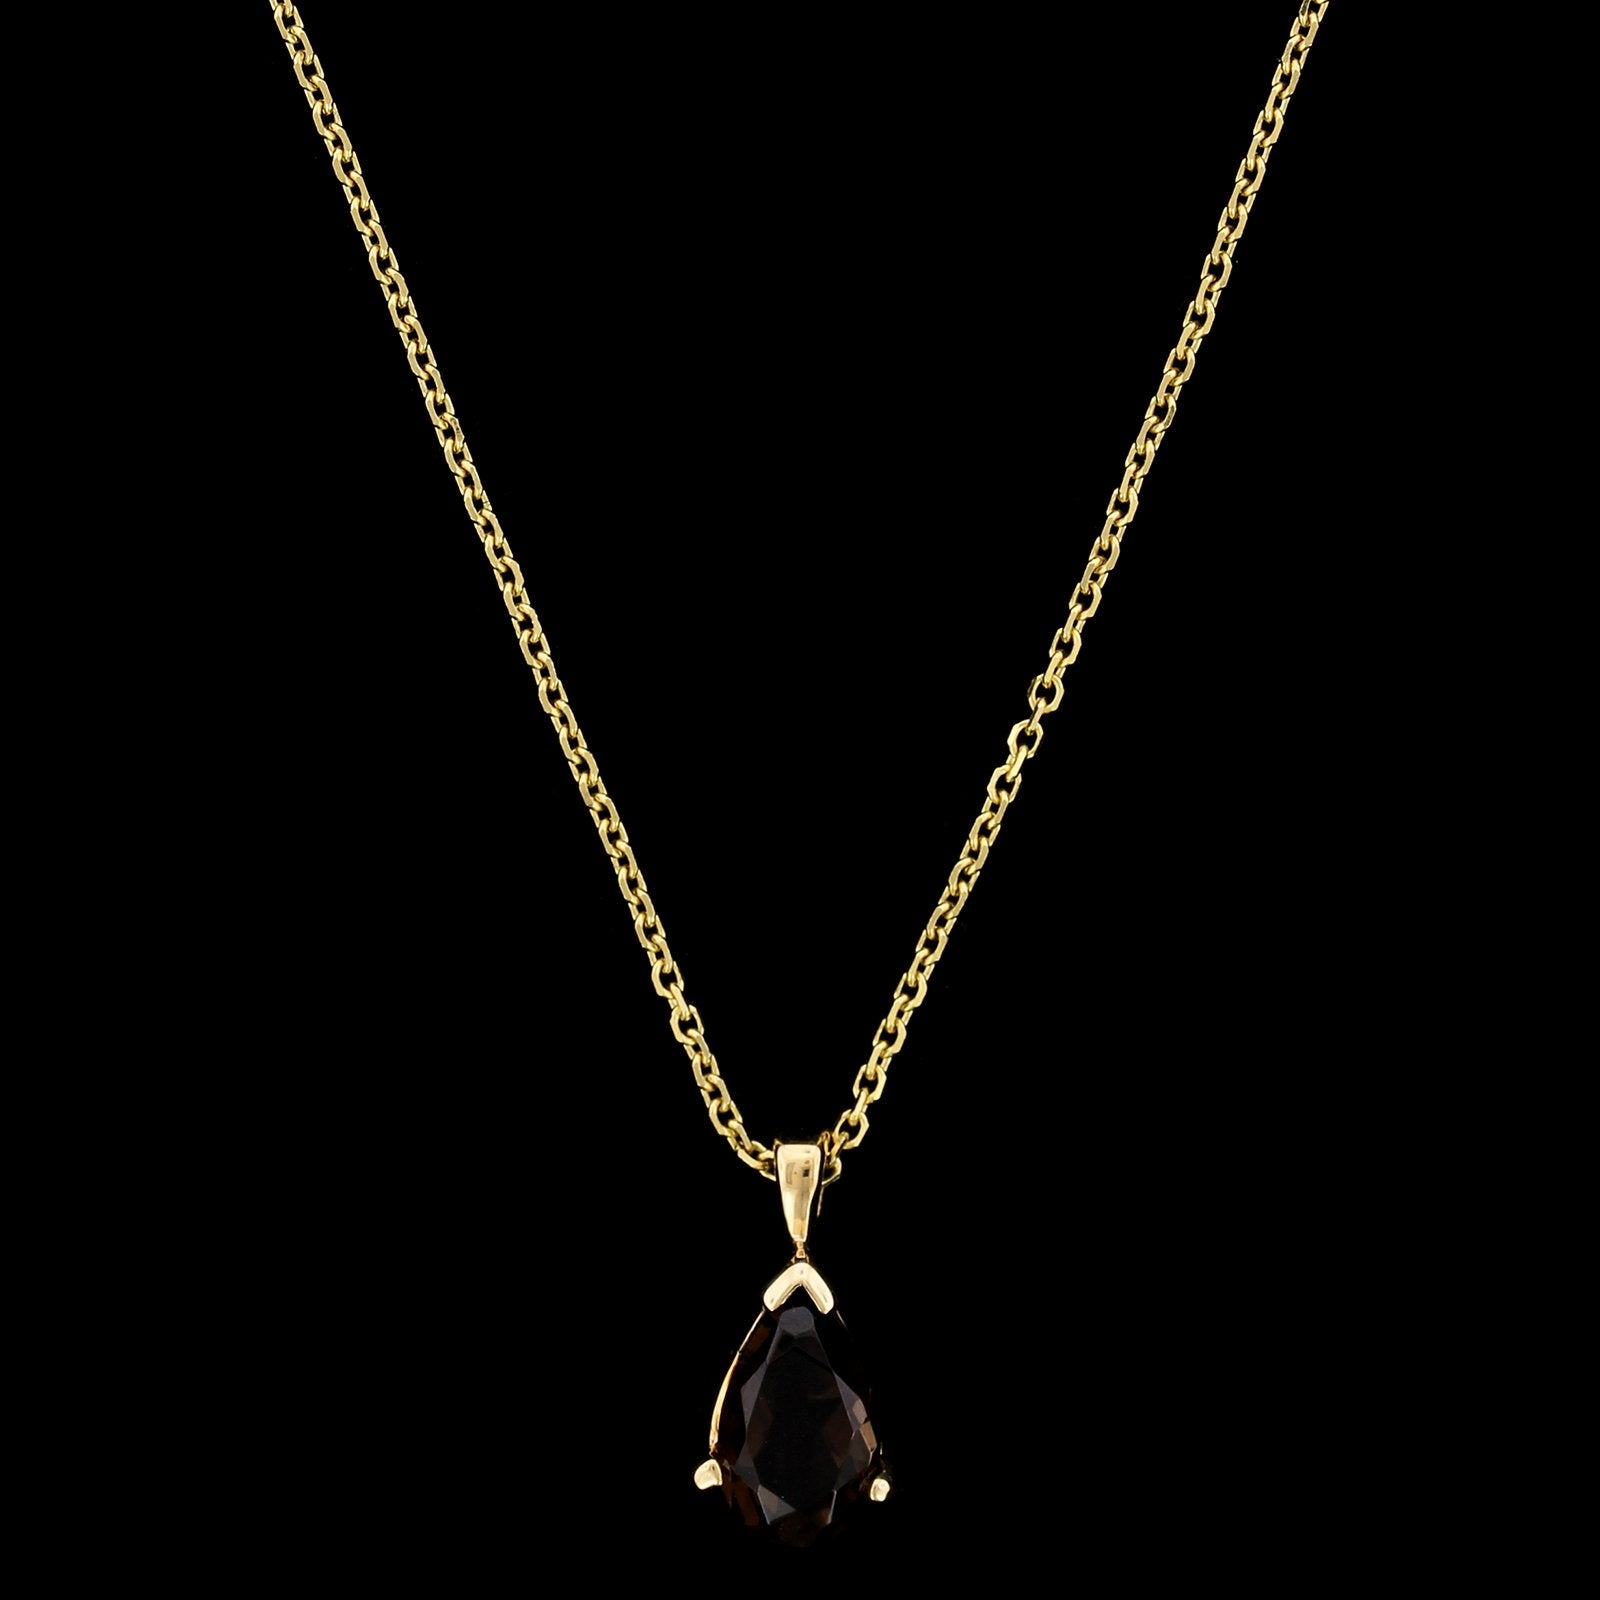 14K Yellow Gold Estate Smoky Quartz Pendant